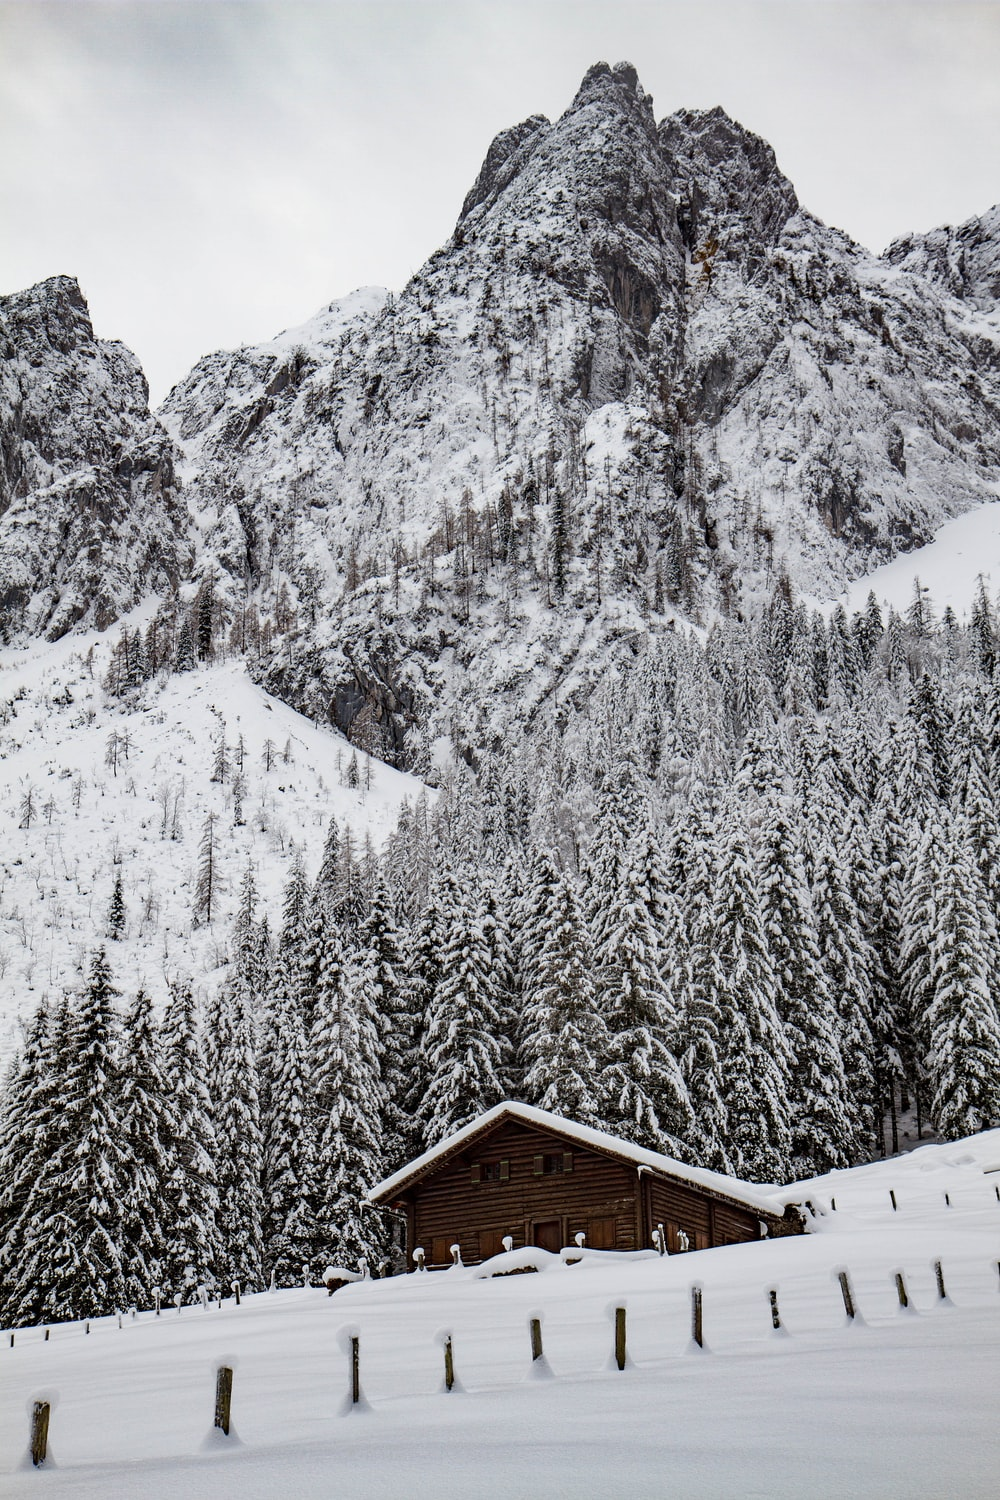 brown cabin on snow-covered mountain